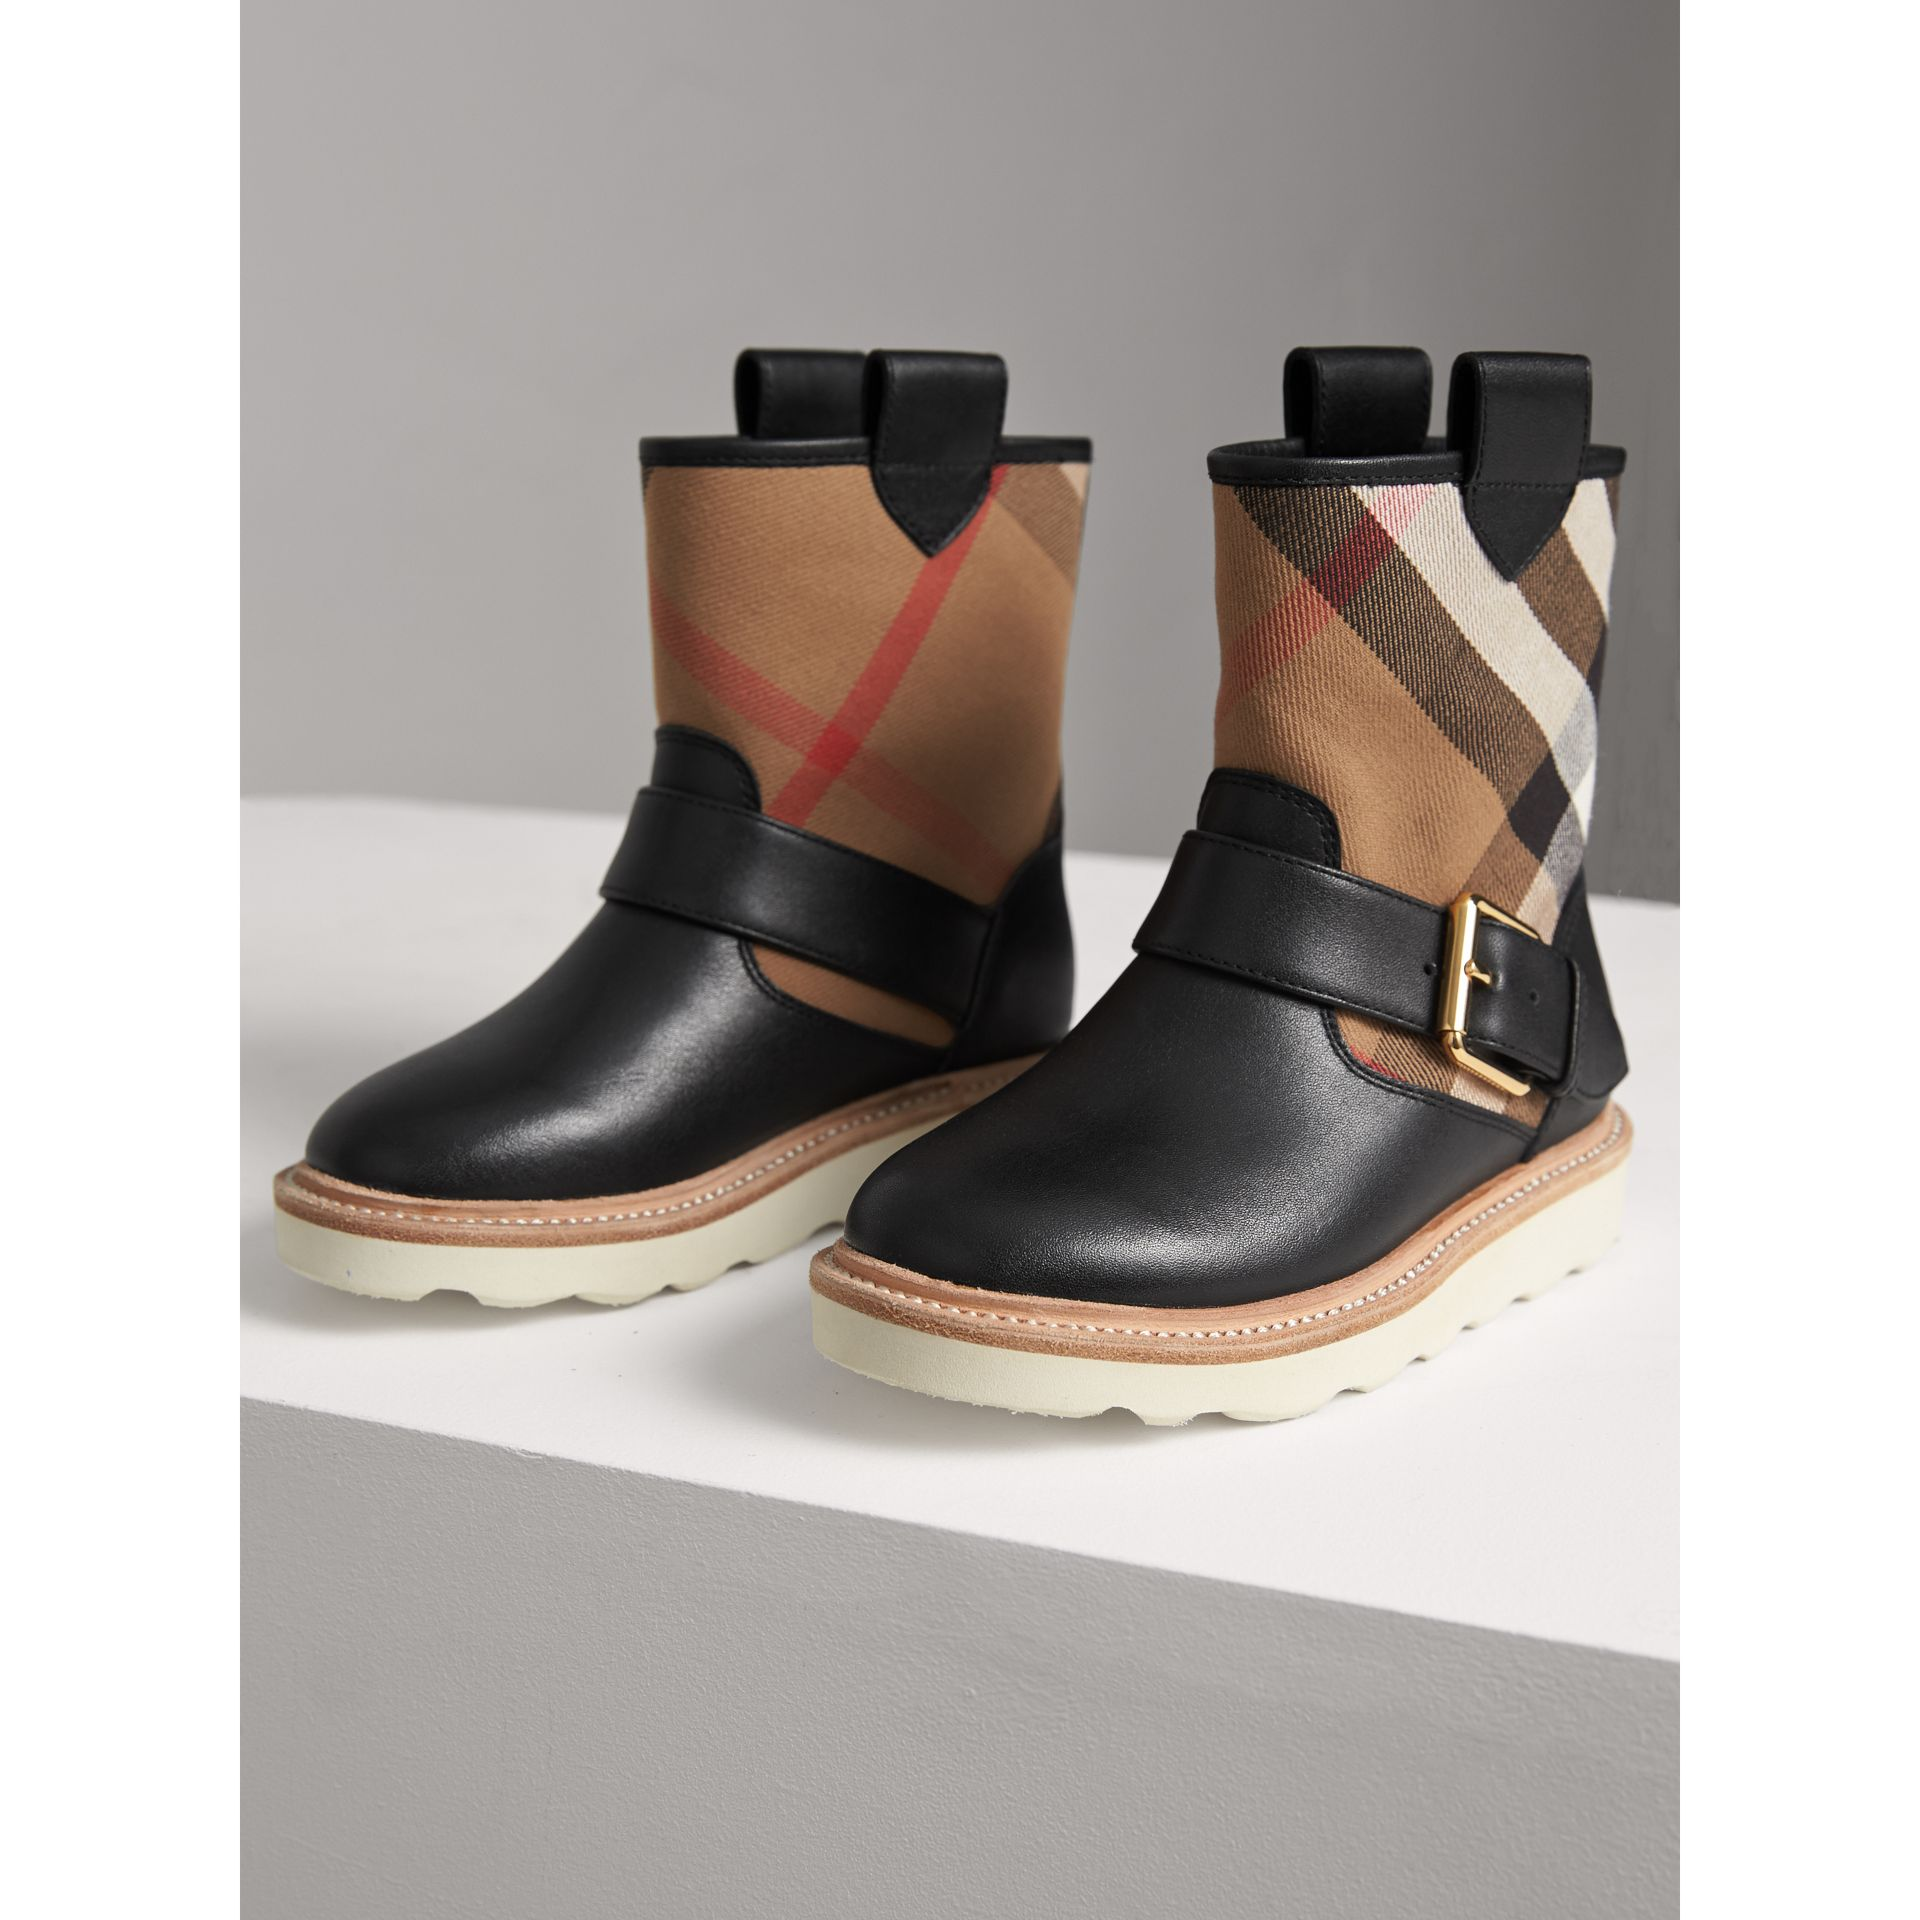 House Check and Leather Weather Boots in Classic | Burberry - gallery image 4